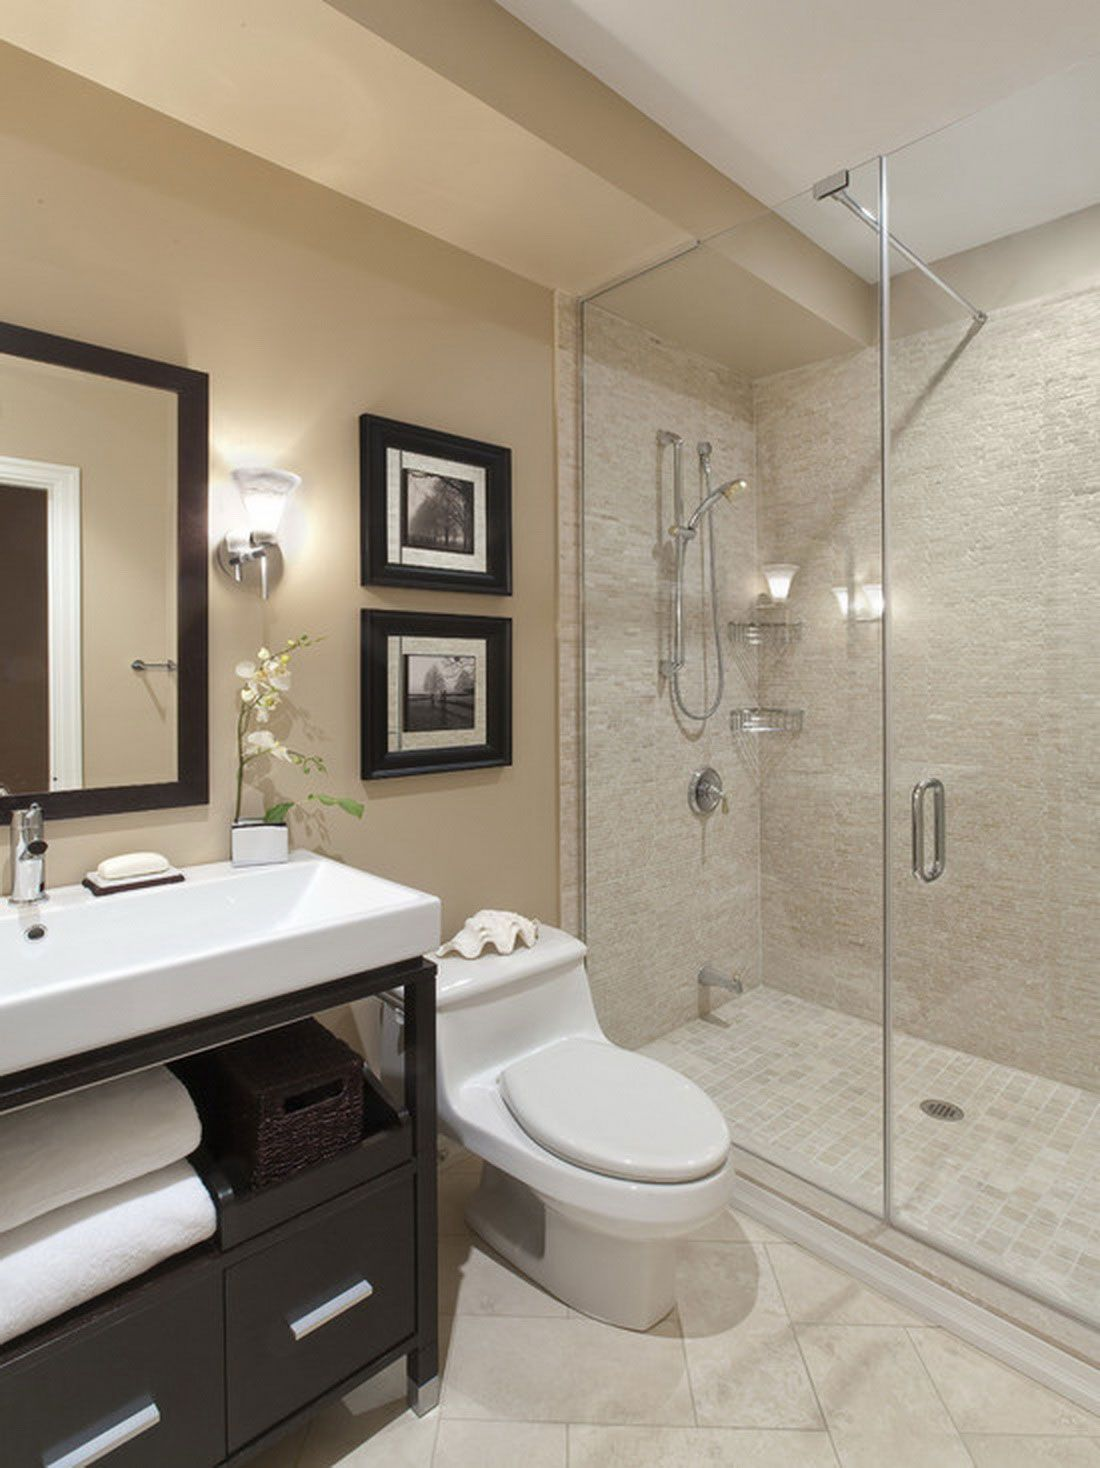 15 extraordinary transitional bathroom designs for any home - Contemporary Bathroom Design Ideas